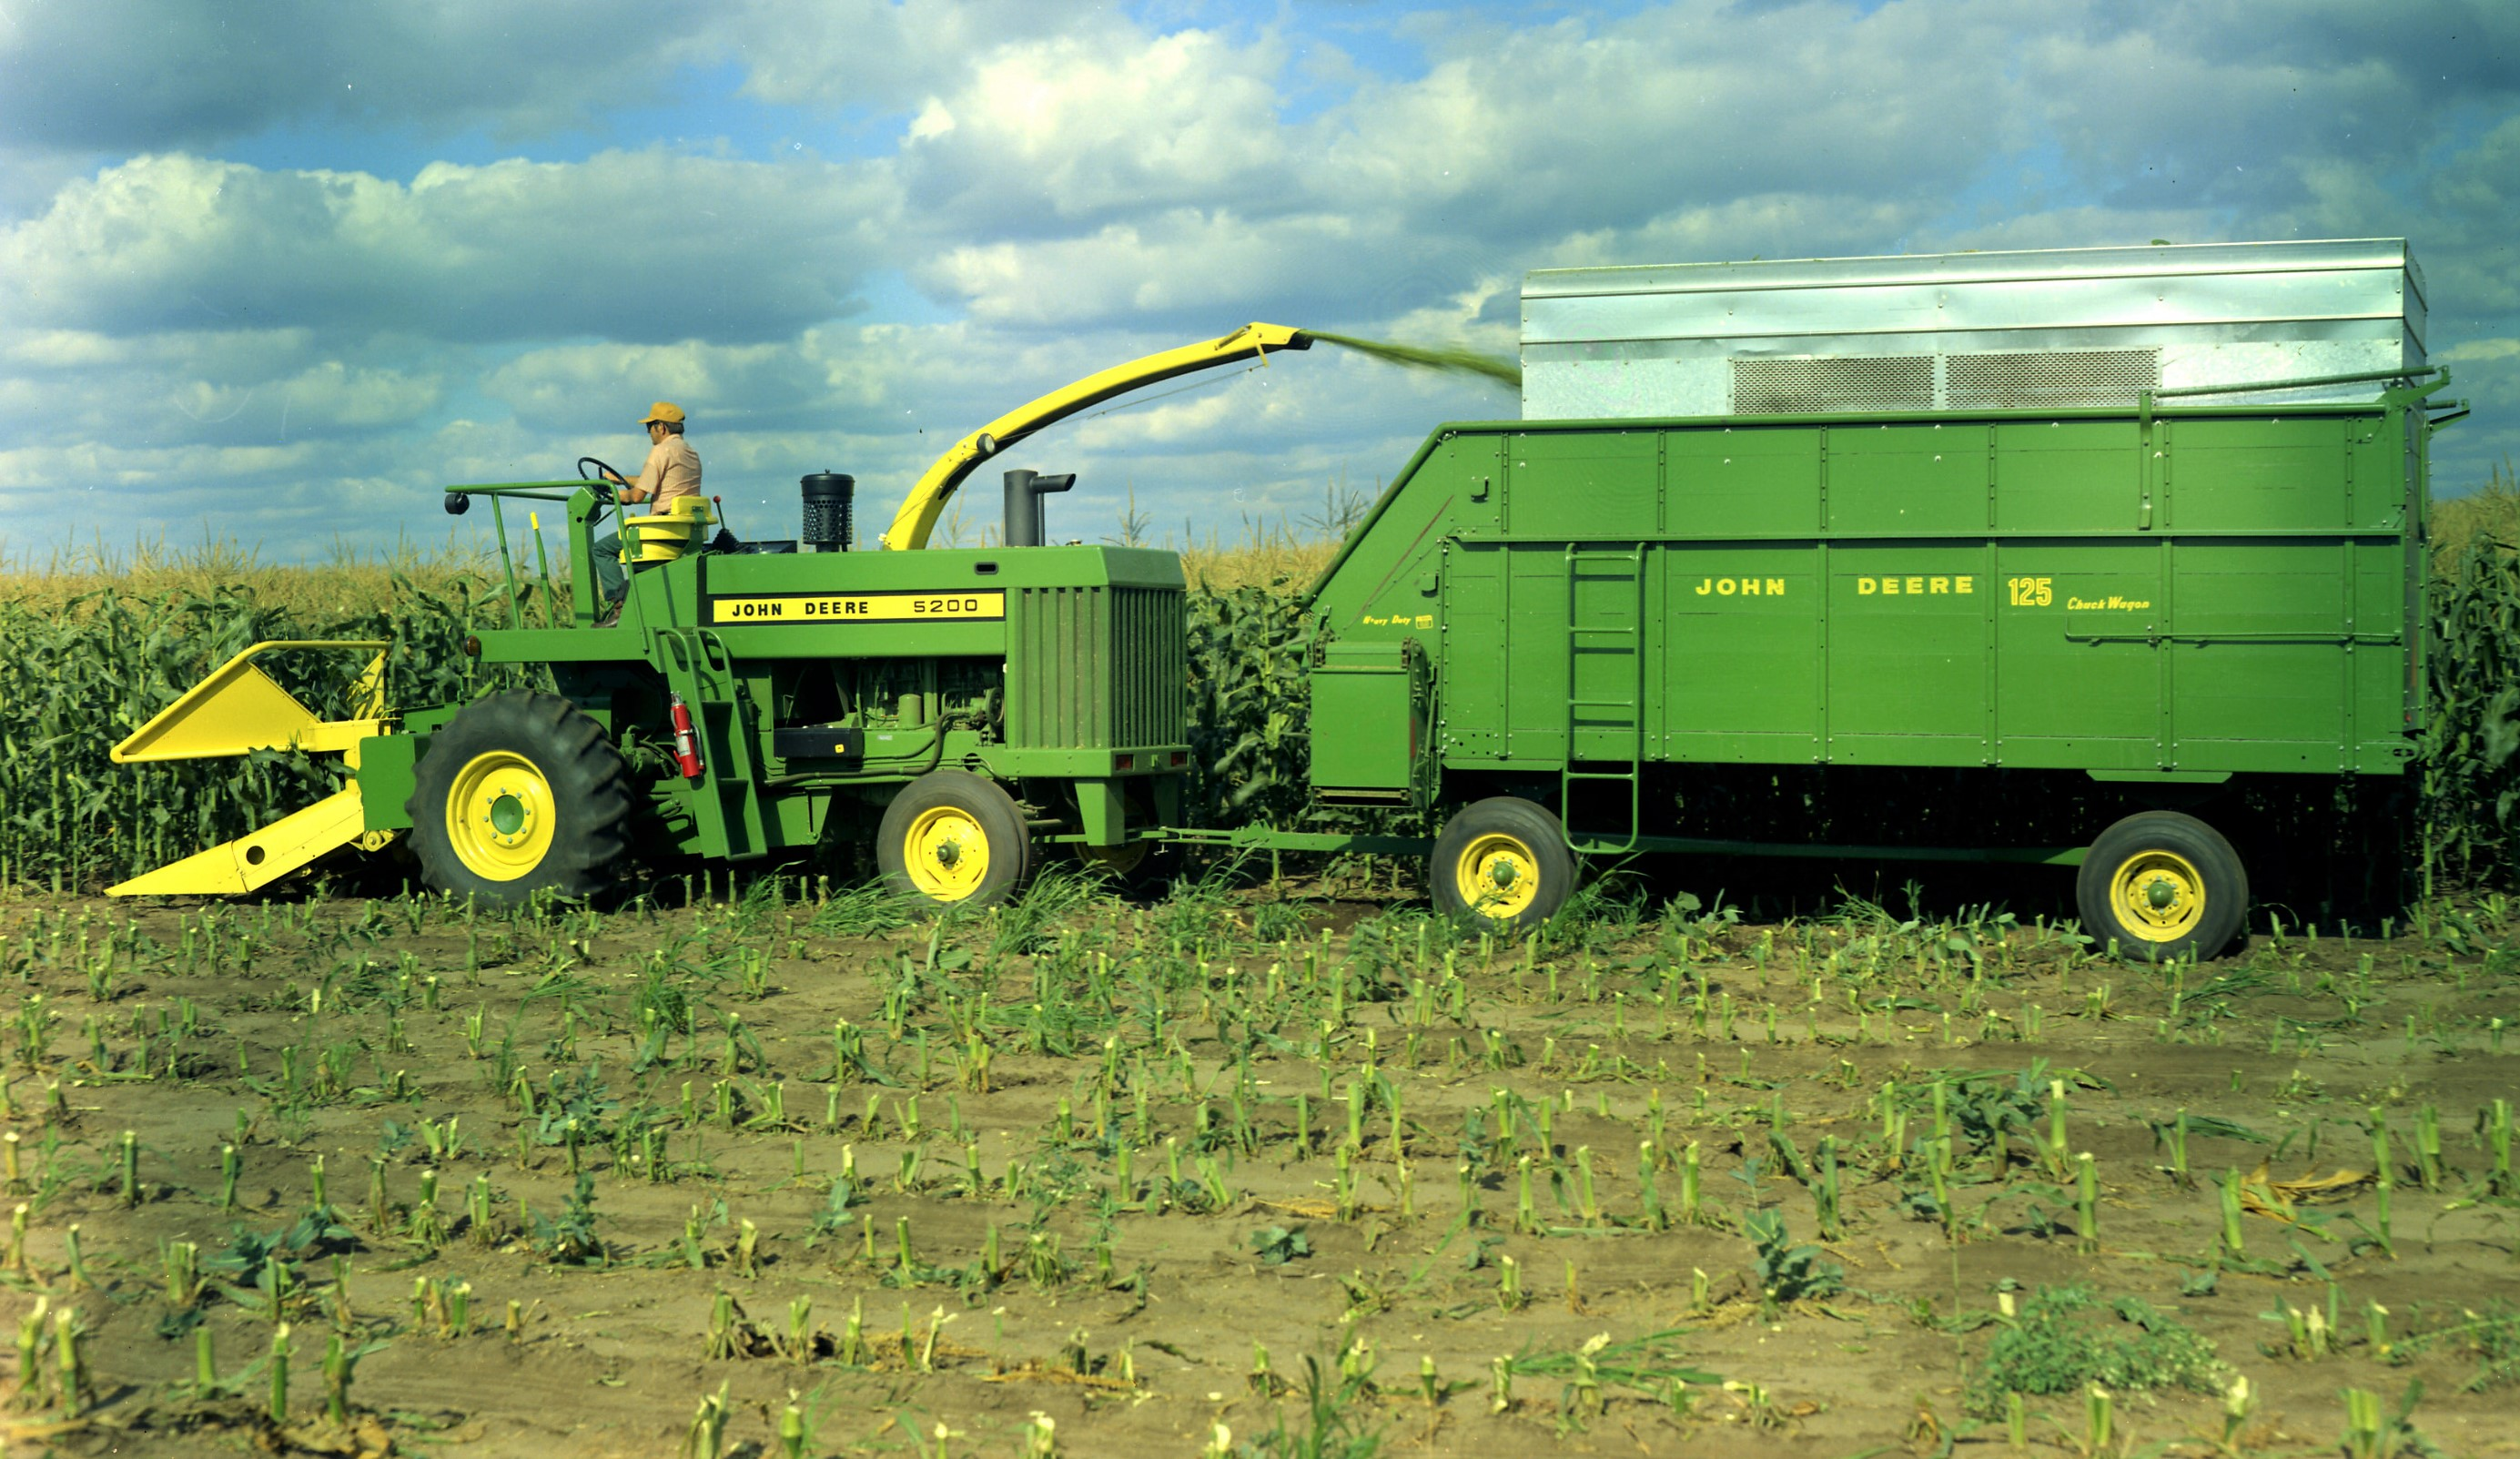 Nostalgia Where Did John Deere Self Propelled Foragers Come From Combine Box Fuse Image Source